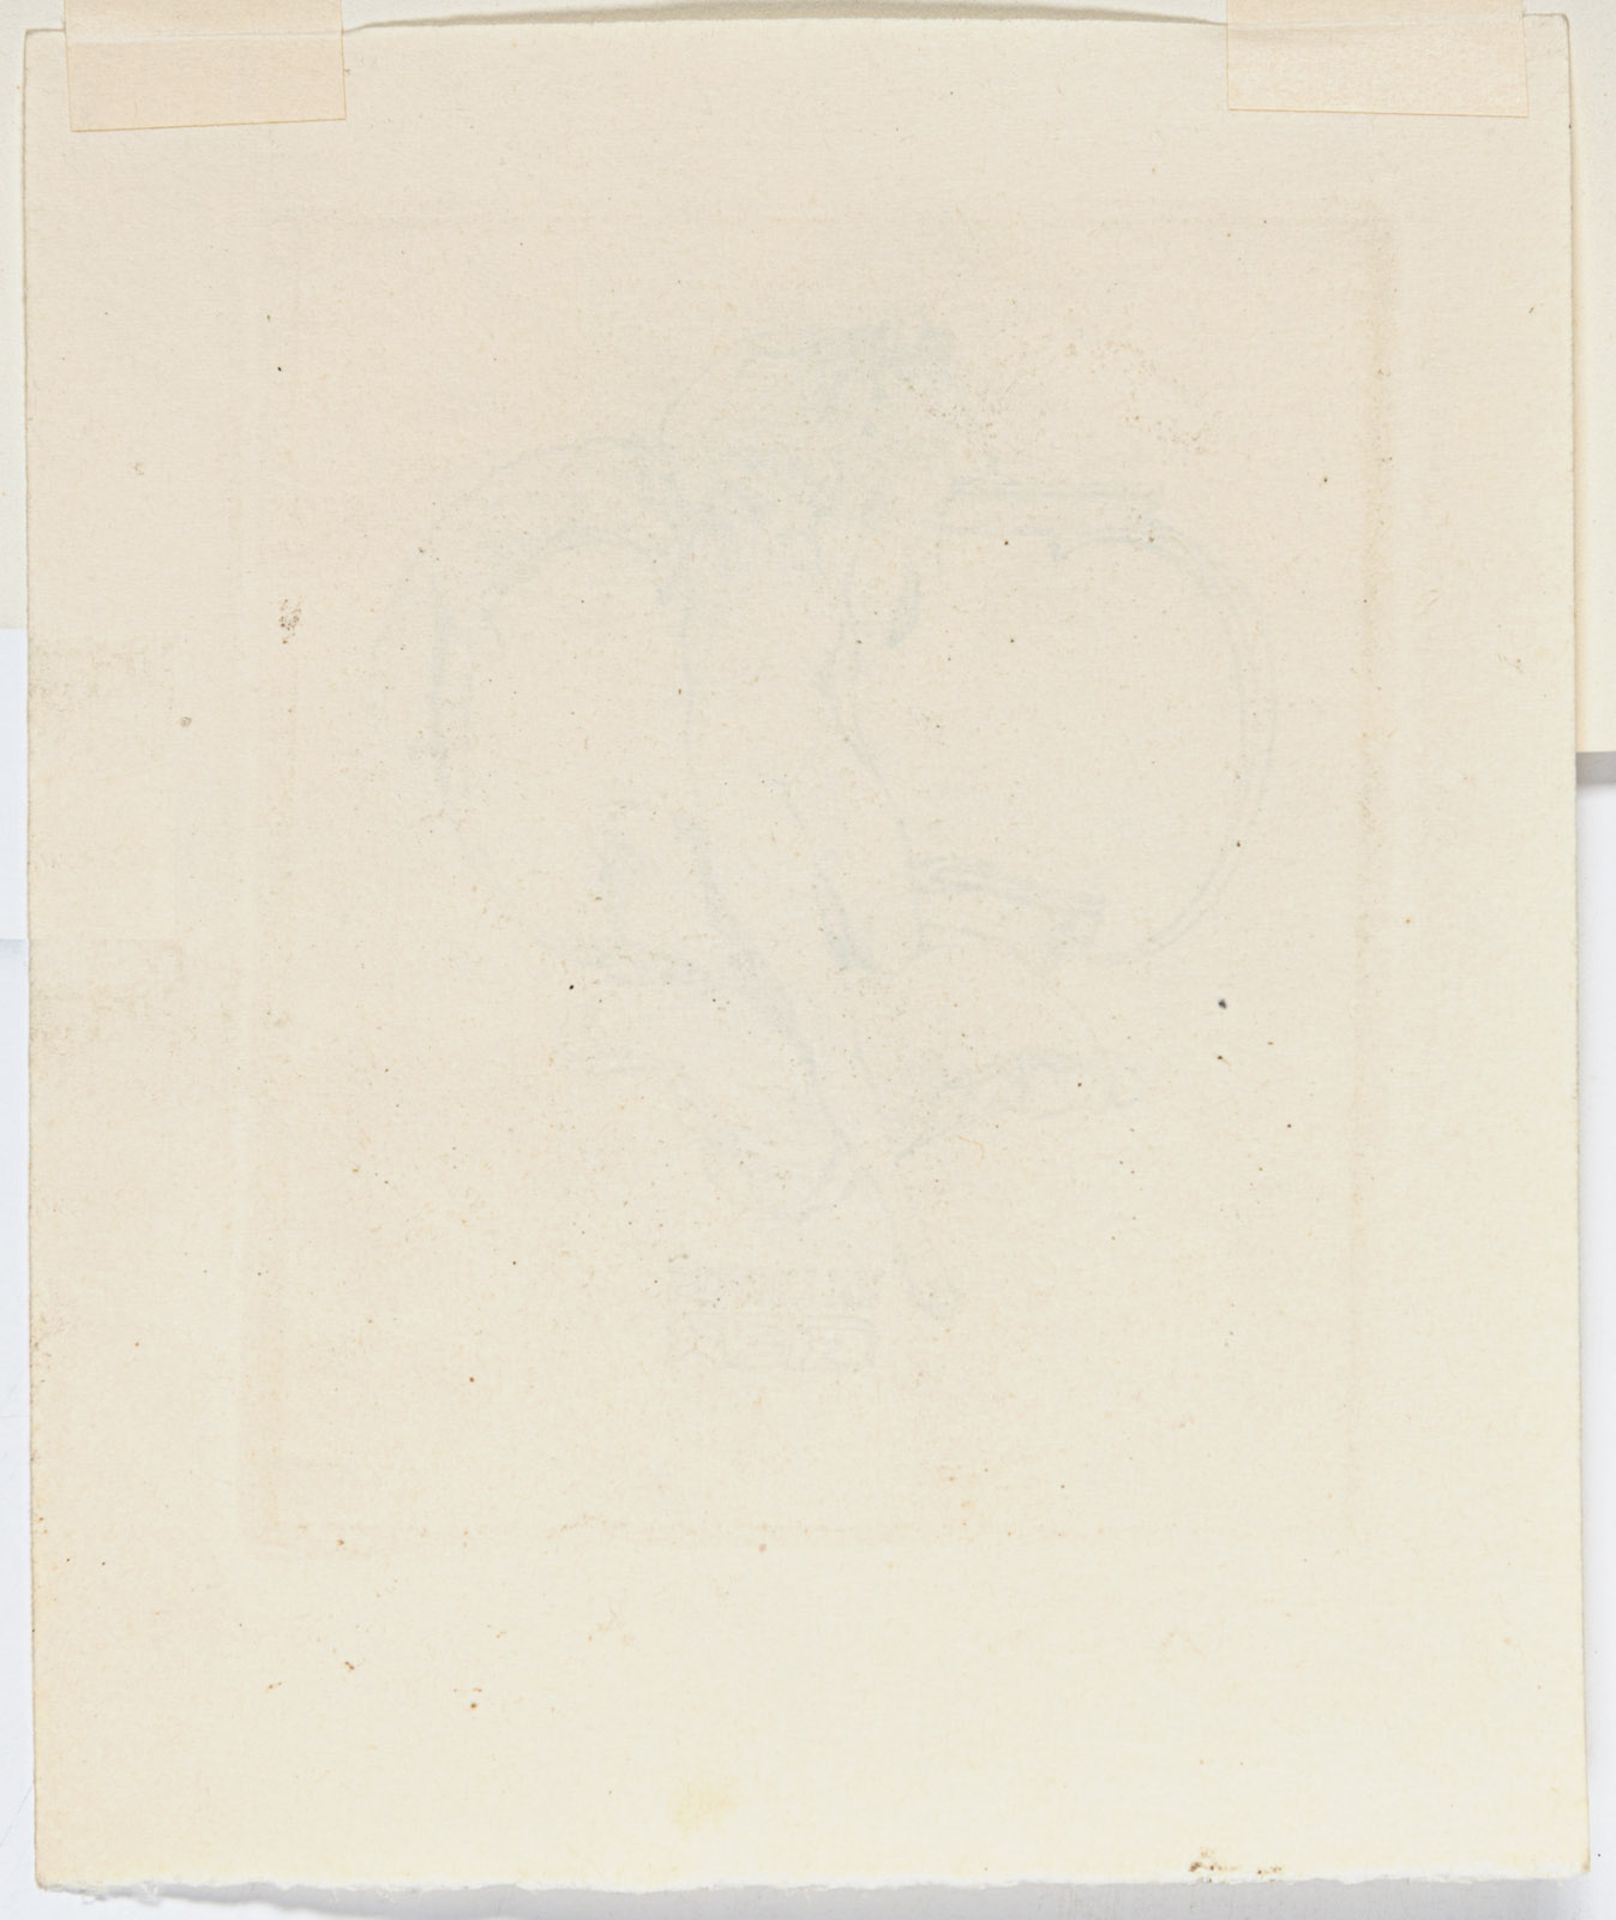 Various artists - Image 15 of 24